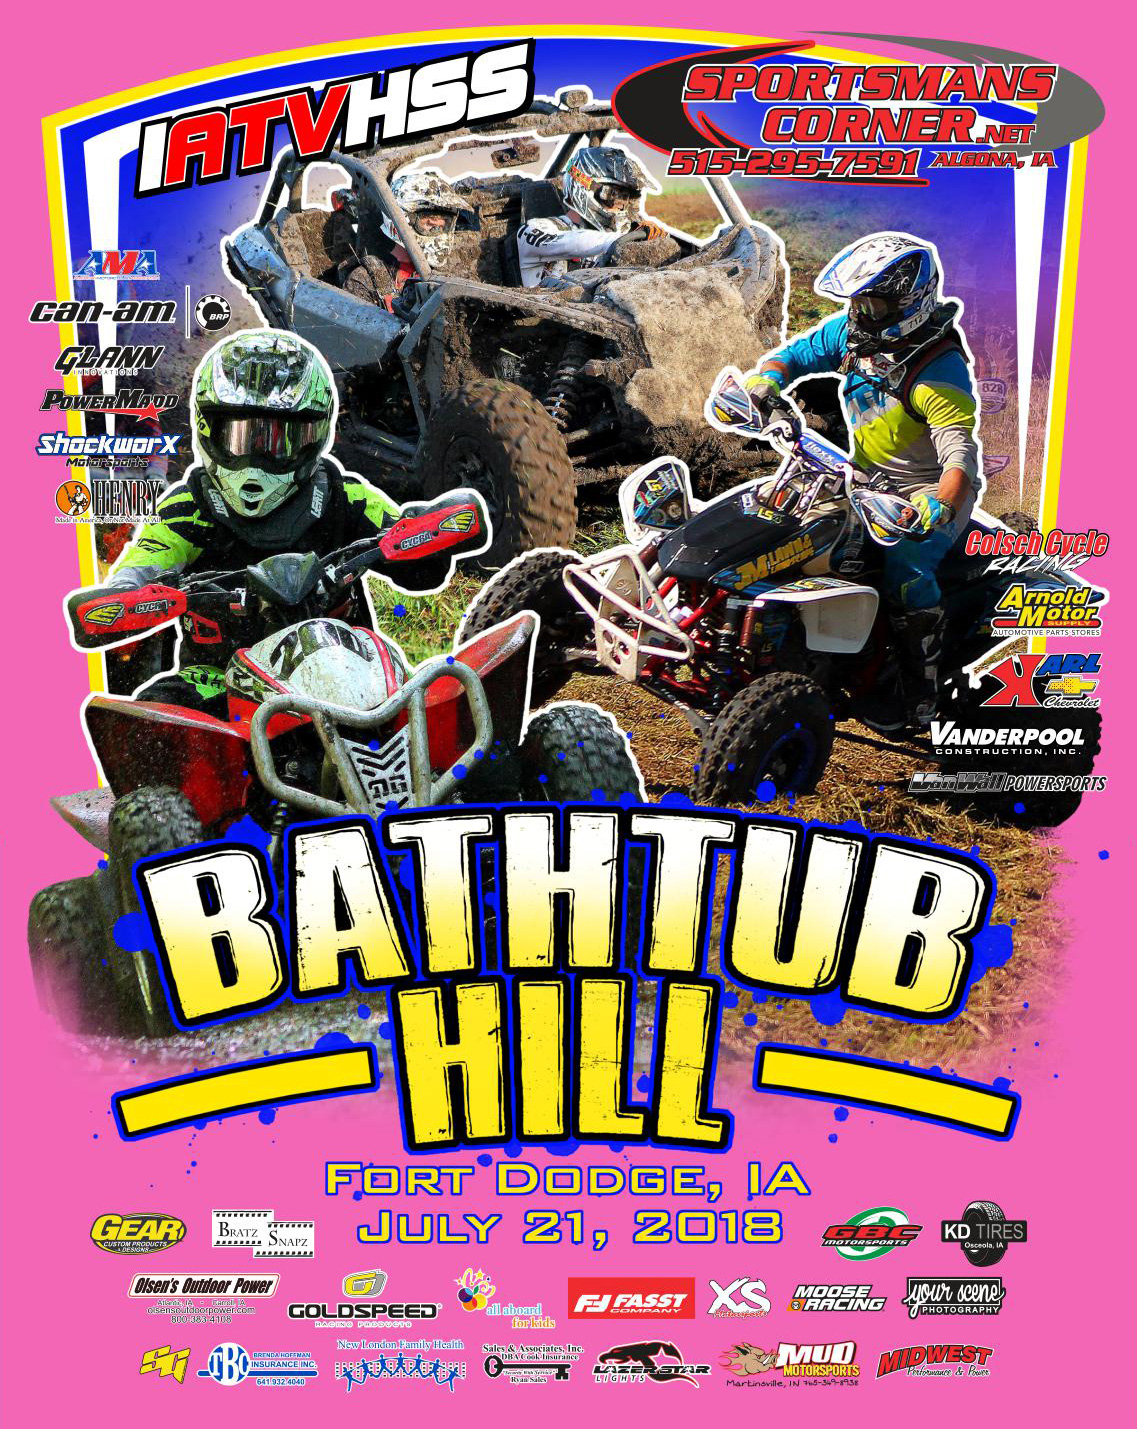 Round 5 Ft Dodge Bathtub Hill IATVHSS 2018